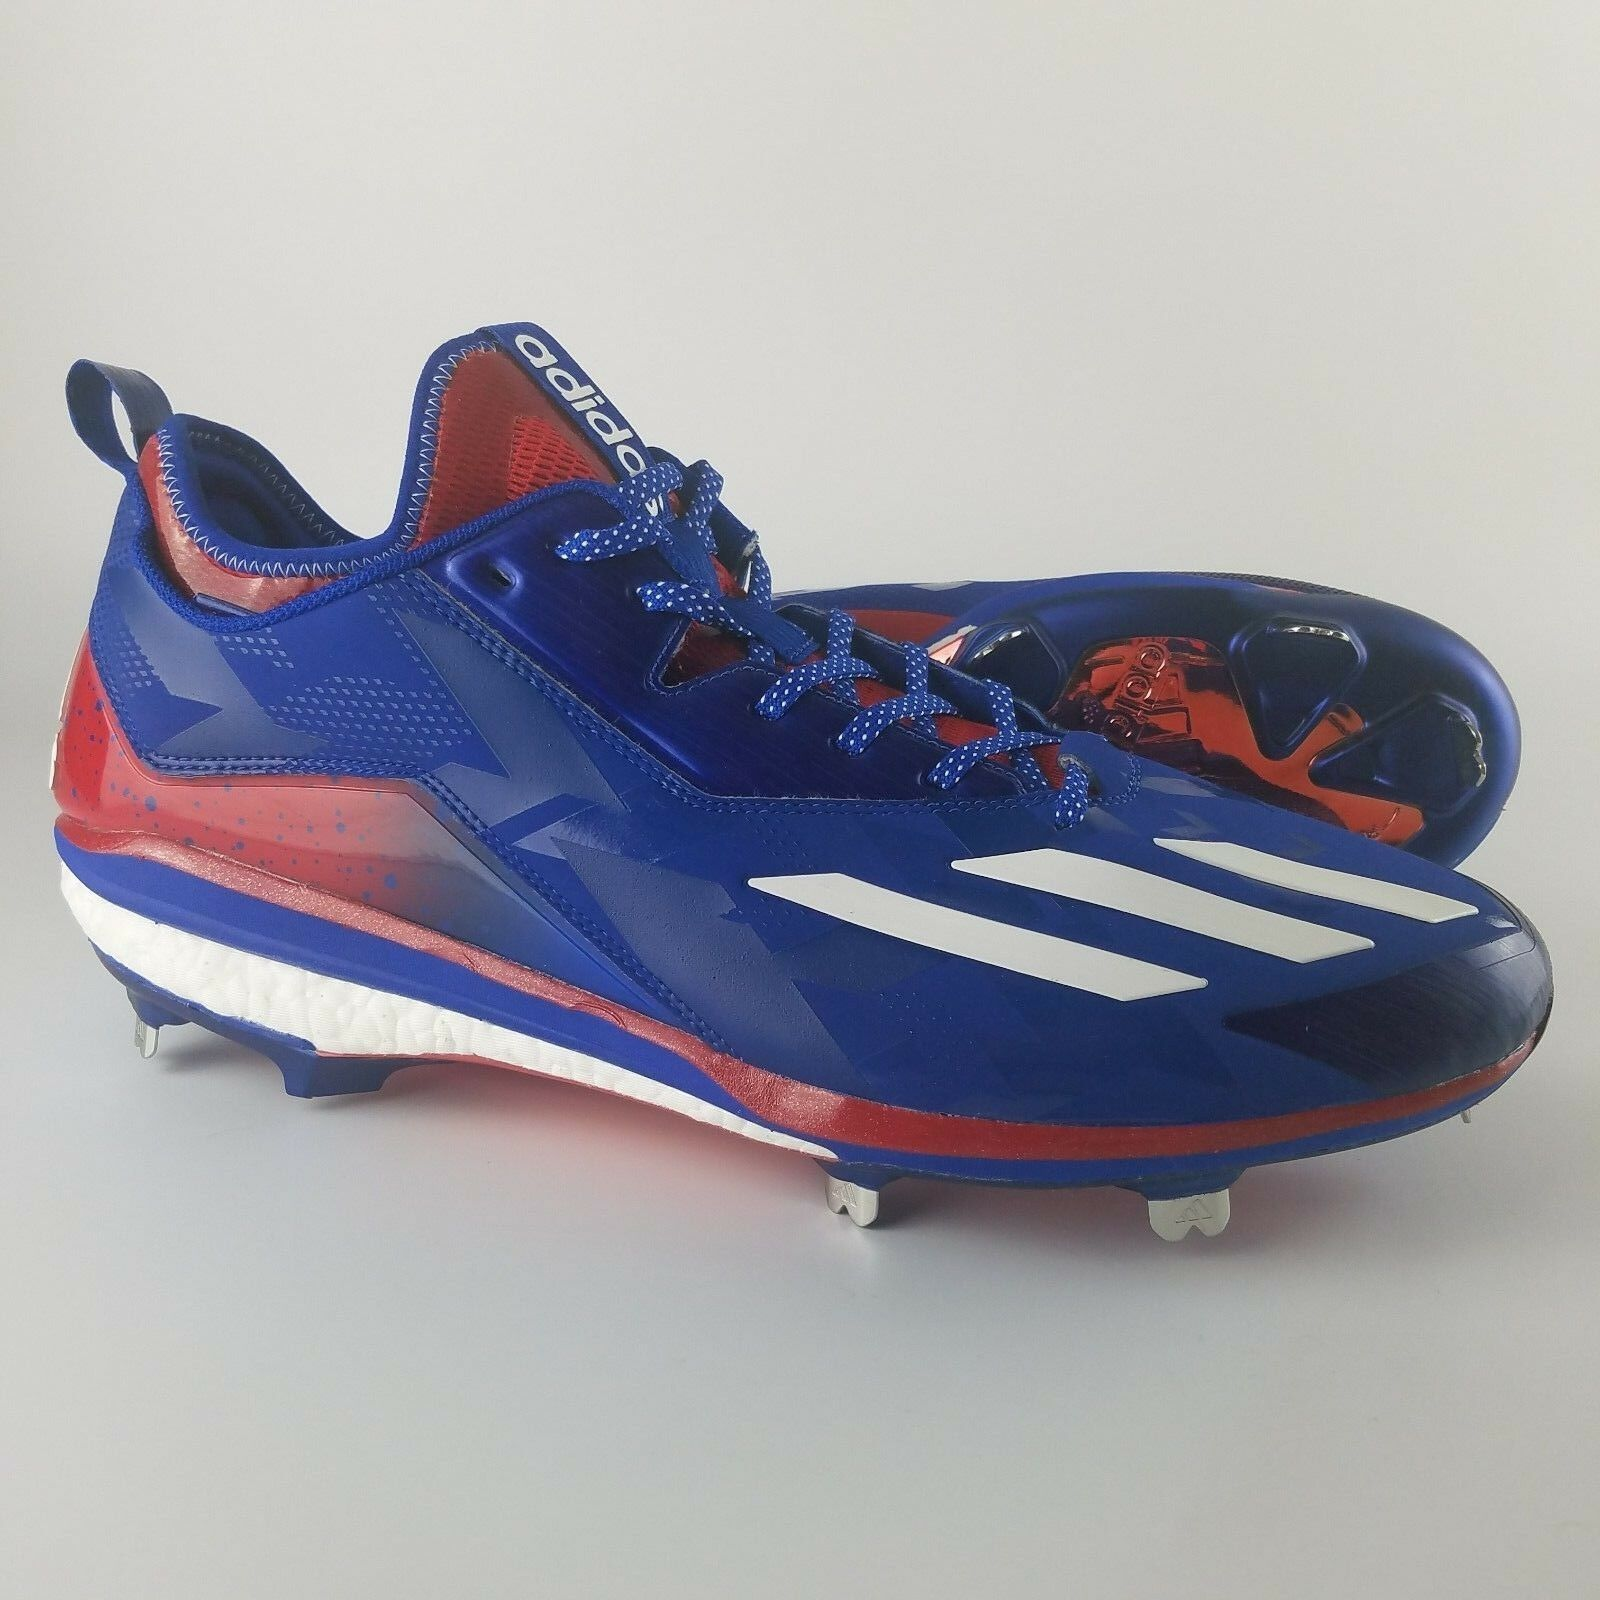 Adidas Boost Icon 2.0 Metal Baseball Cleats Uomo Size 14 Kris Bryant Red Blue